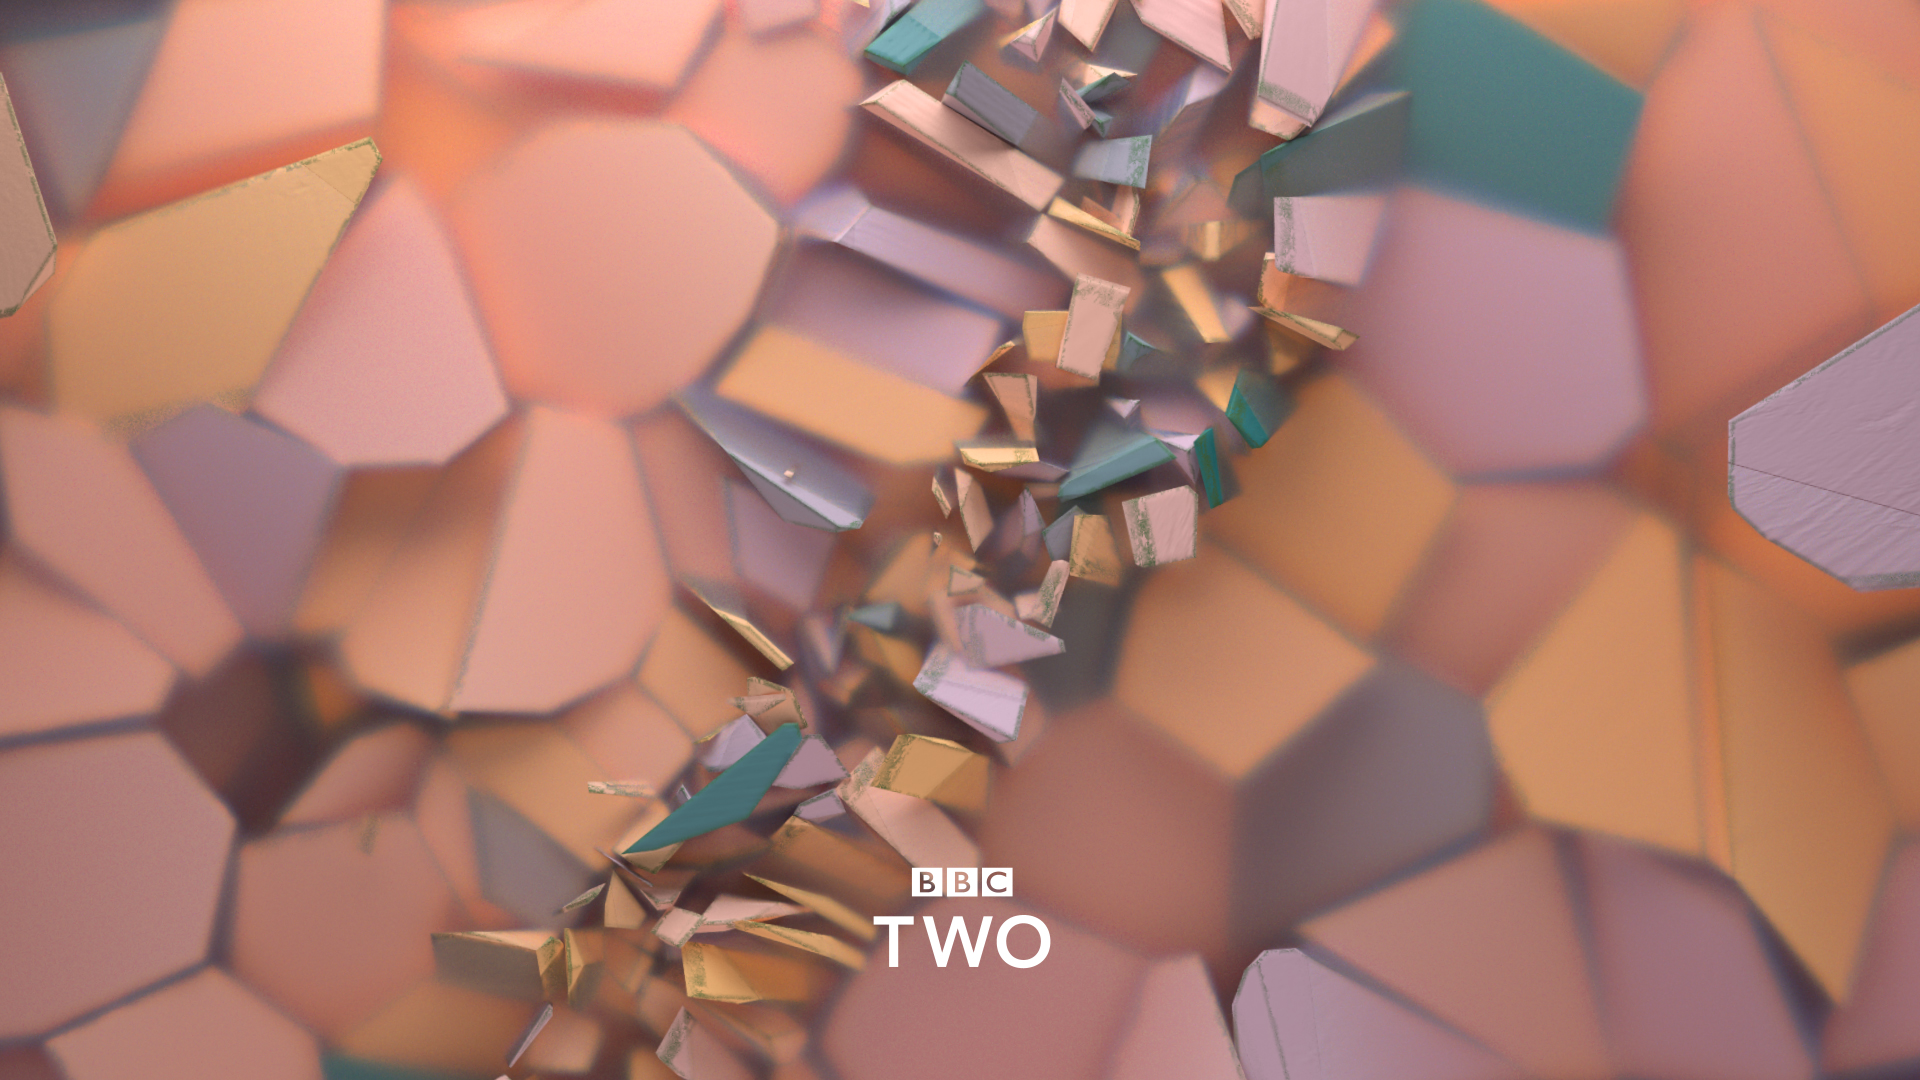 BBC_two_14